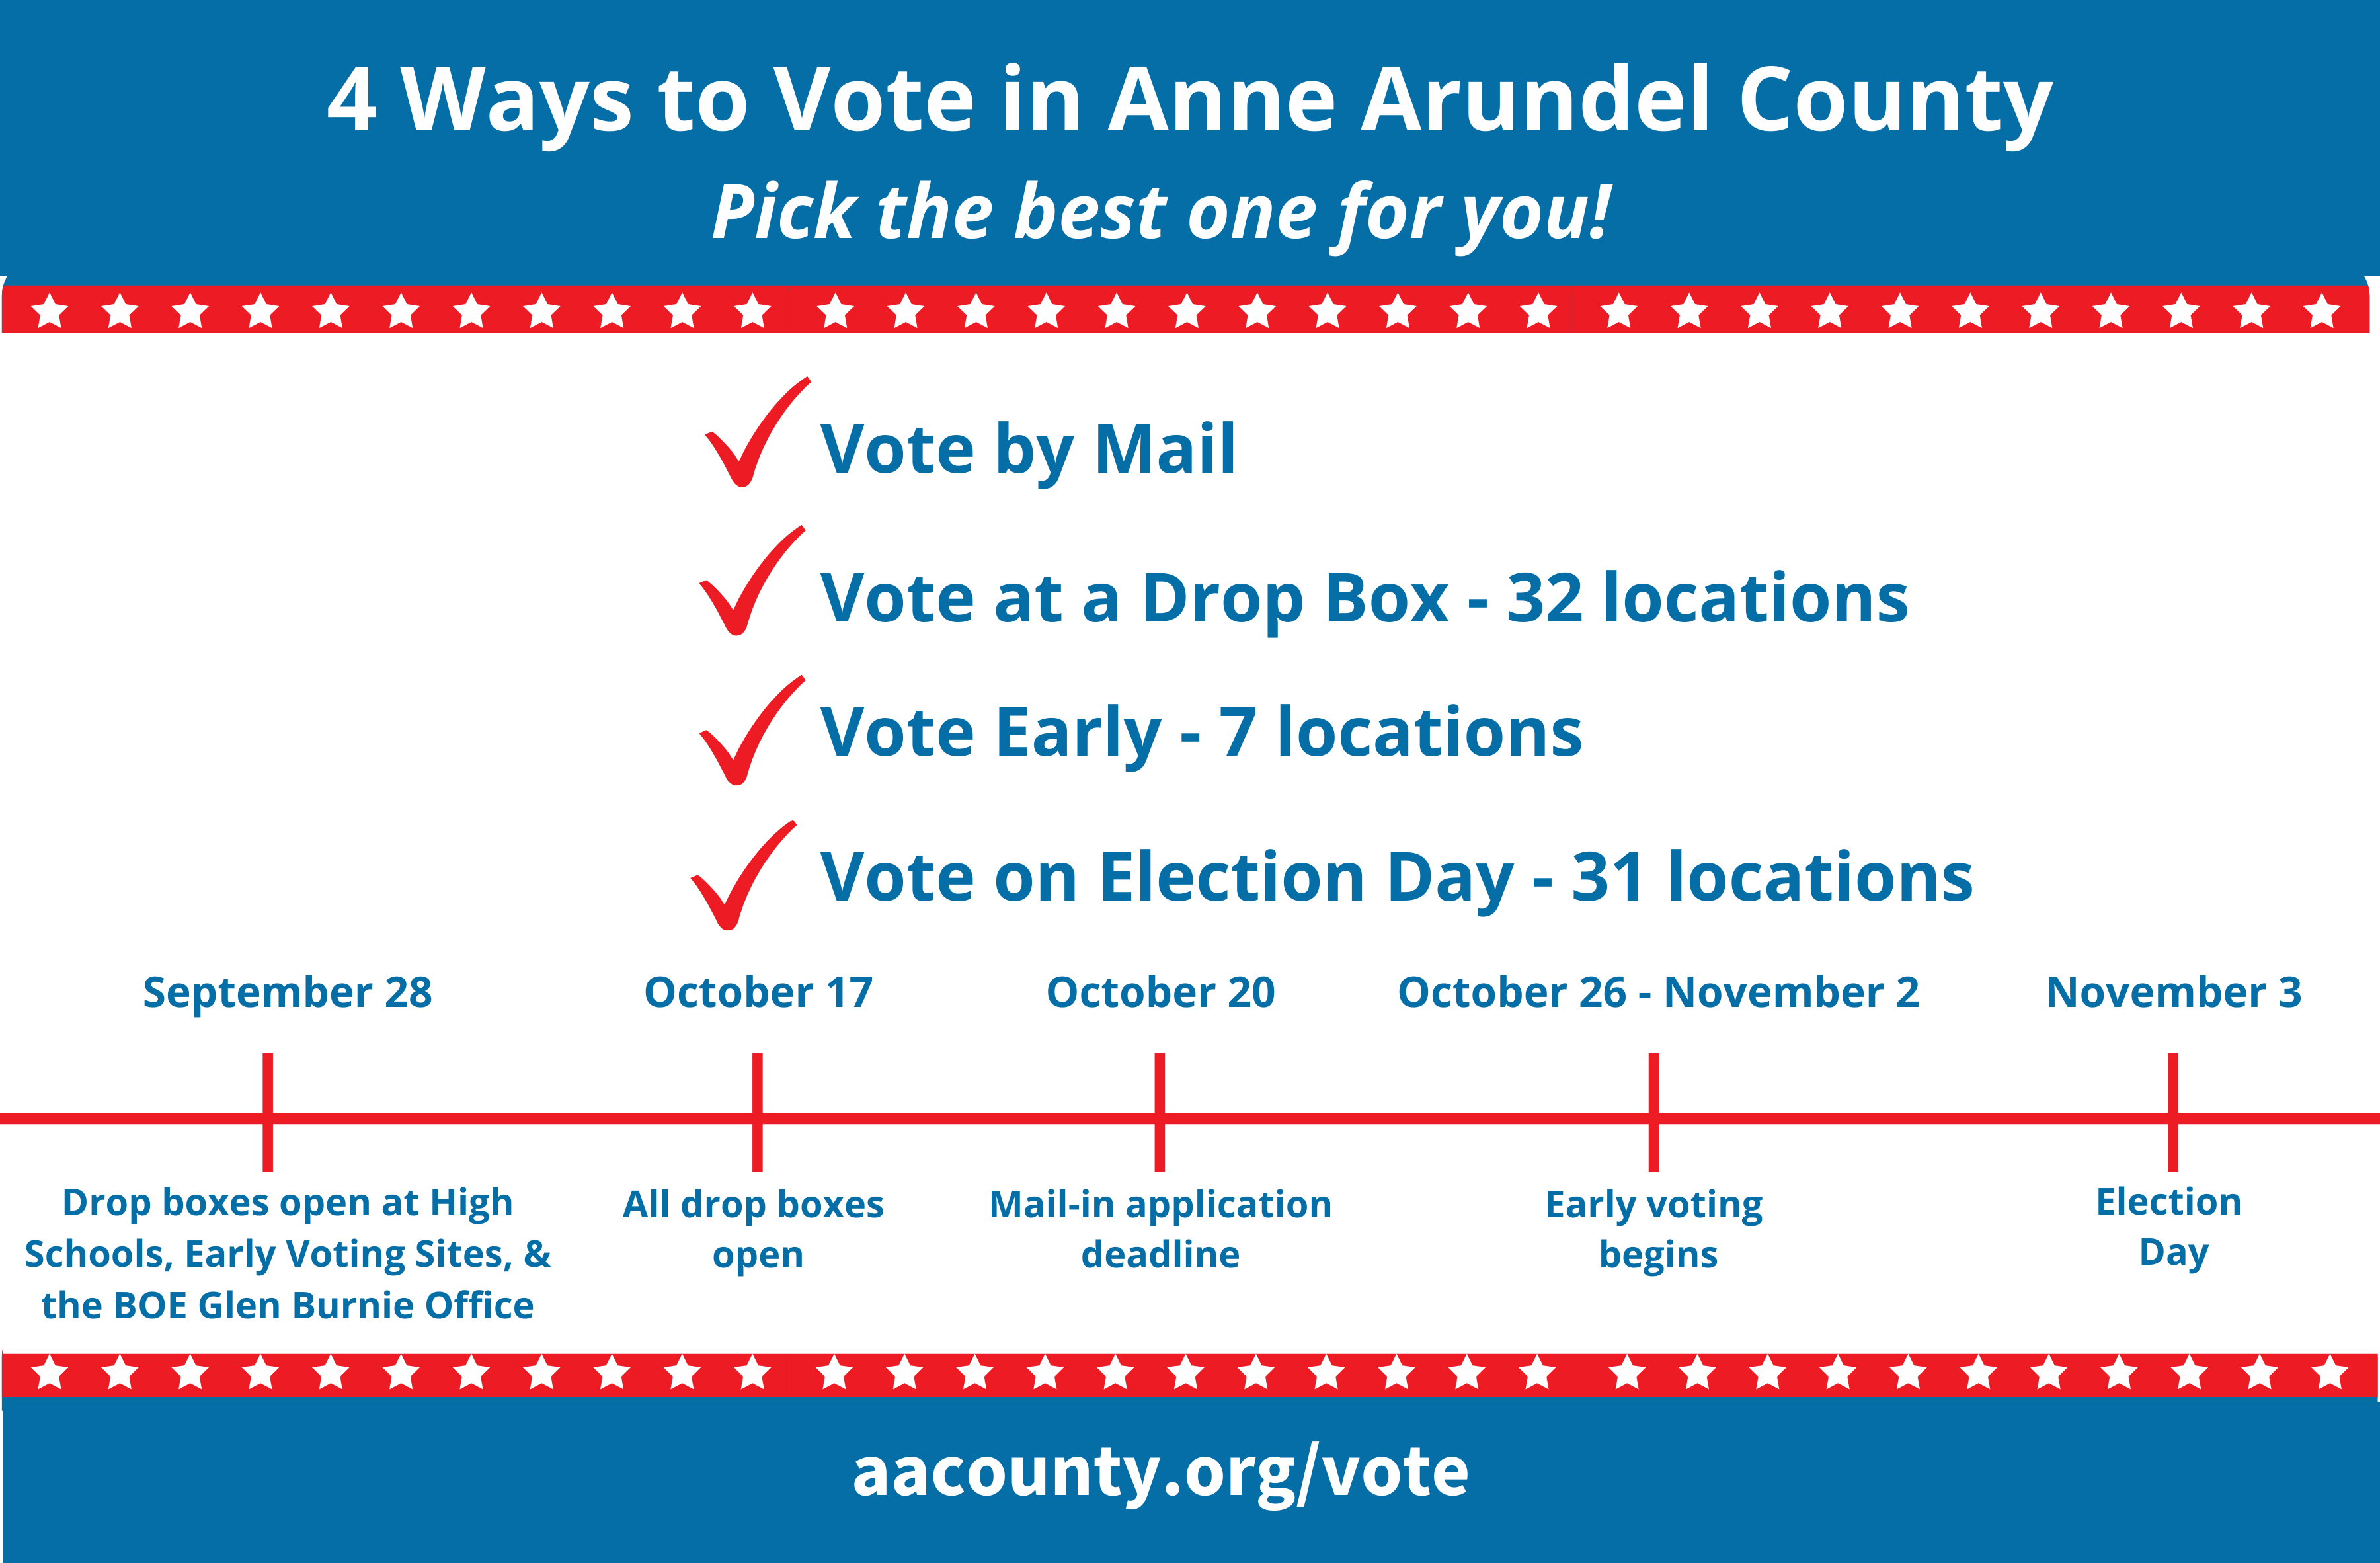 This 4 ways to vote in Anne Arundel County, by mail, drop box, early, on election day